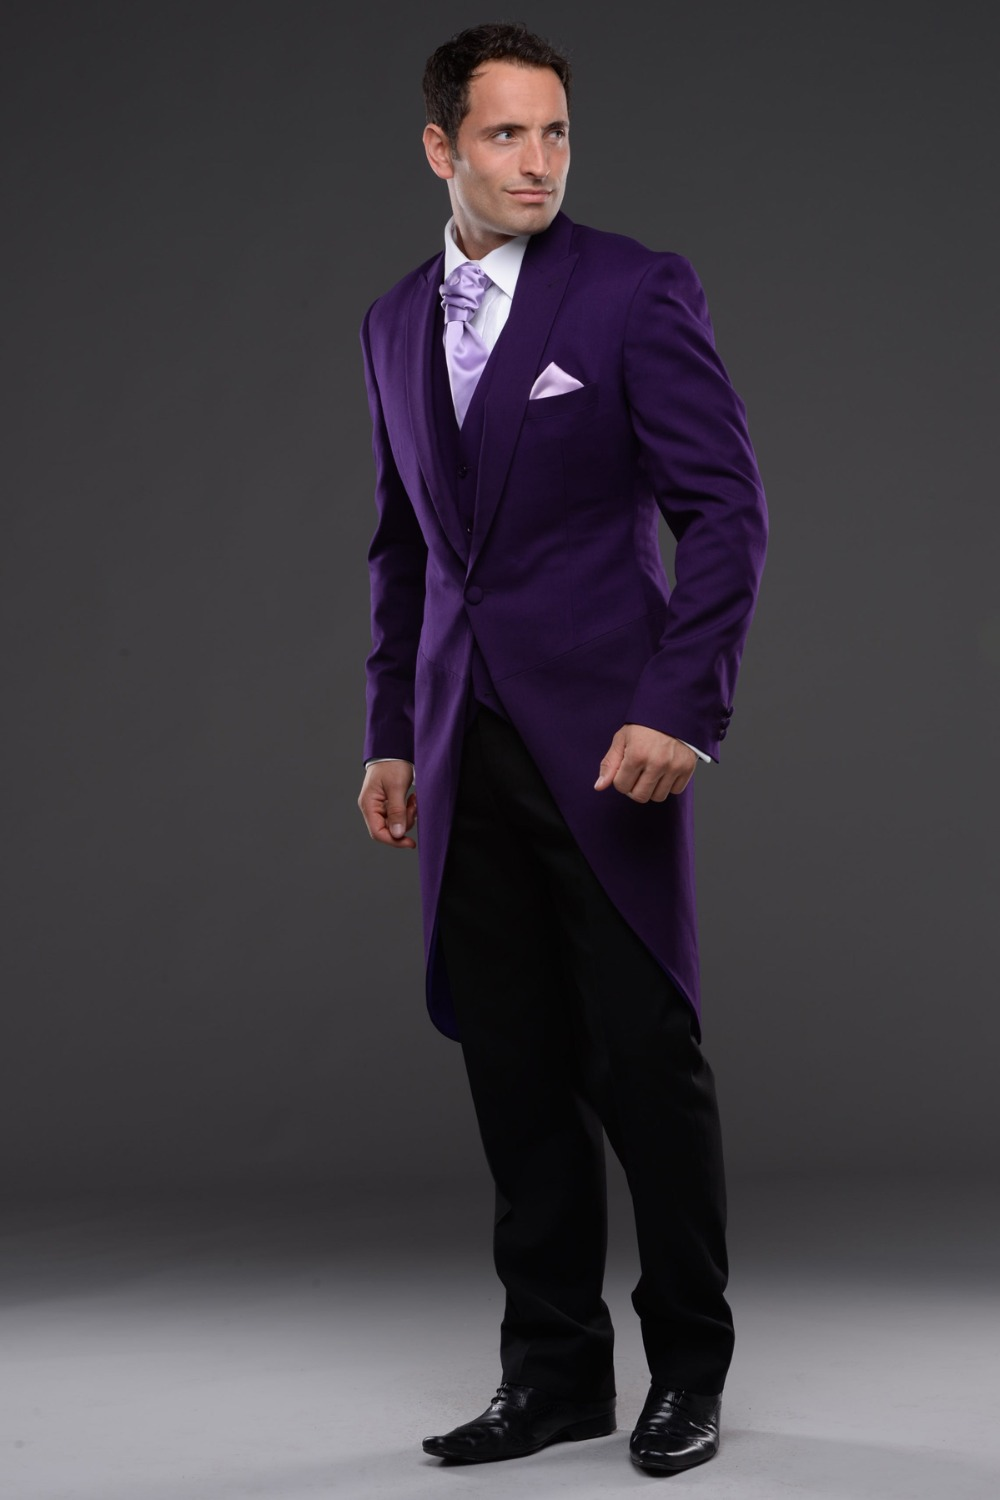 Purple Men's 2 Piece Peak Lapel Wedding Groom Tuxedos Groomsman Best Man Suits in Clothing, Shoes & Accessories, Men's Clothing, Suits Find this Pin and more on JusJ ♥ PURPLE♥ Passion by ♈JusJeanean ♈ 🎵💜🎼🌈 😎📷 Jus4LovePhotos©. Amazing Shimmering Purple Men's Suit on a White Shirt and Blue Tie.